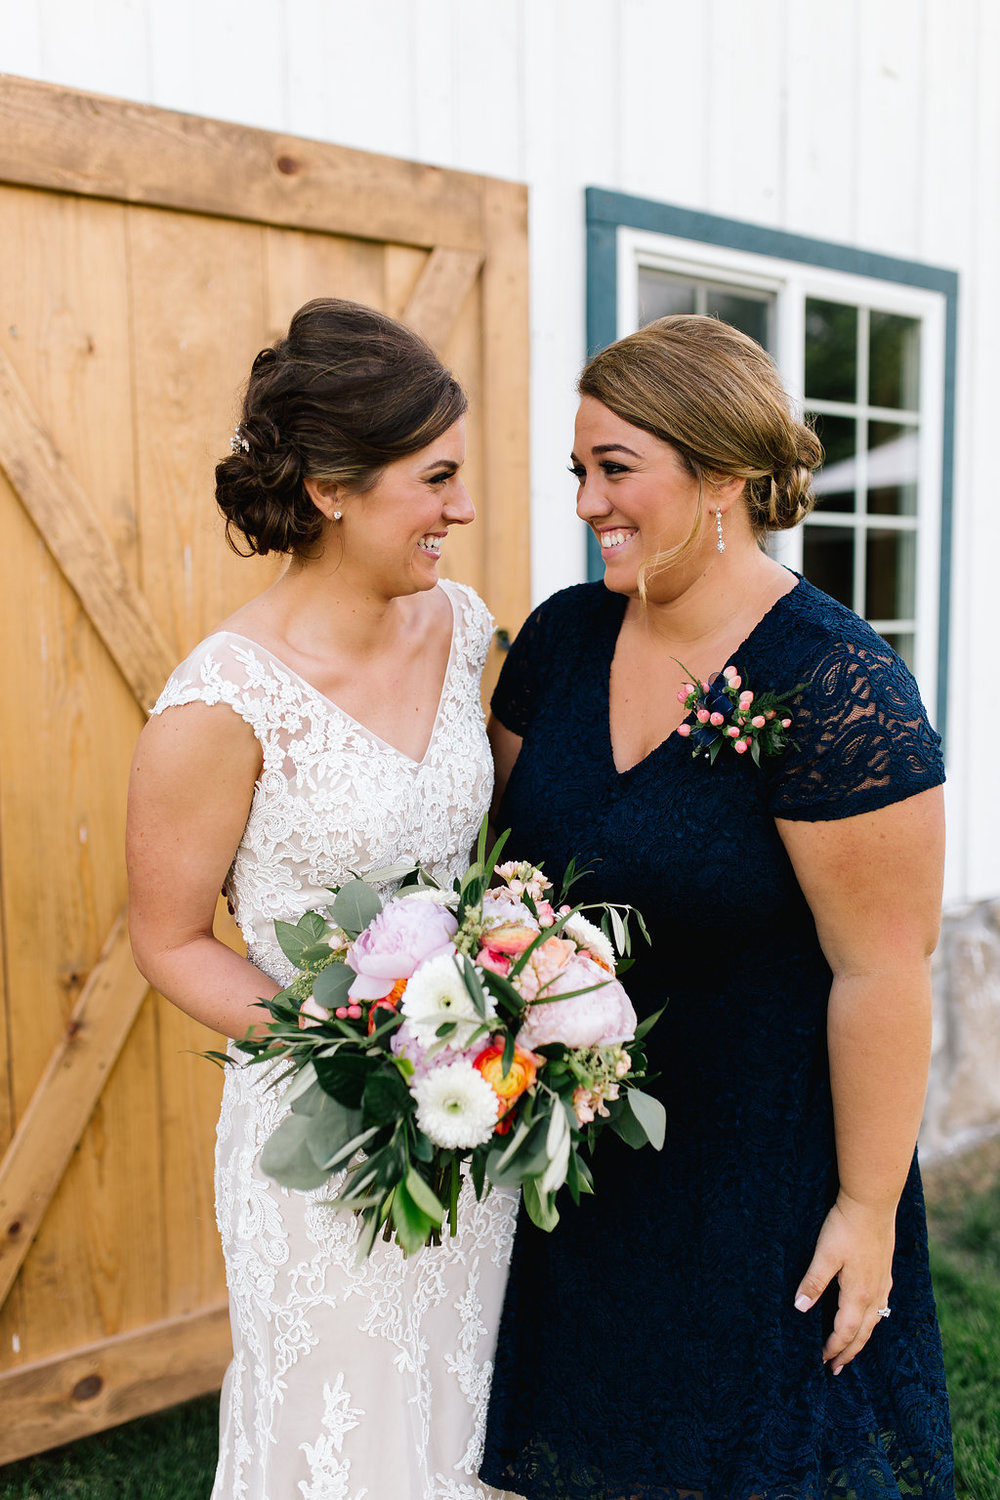 Jade and Seth Bloom Lake Barn wedding | Allison Hopperstad Photography | A Vintage Touch Weddings planning nad design | Day of Coordinating by Sixpence Events | best personal attendant | navy lace dress for personal attendant | pin corsage for personal attendant